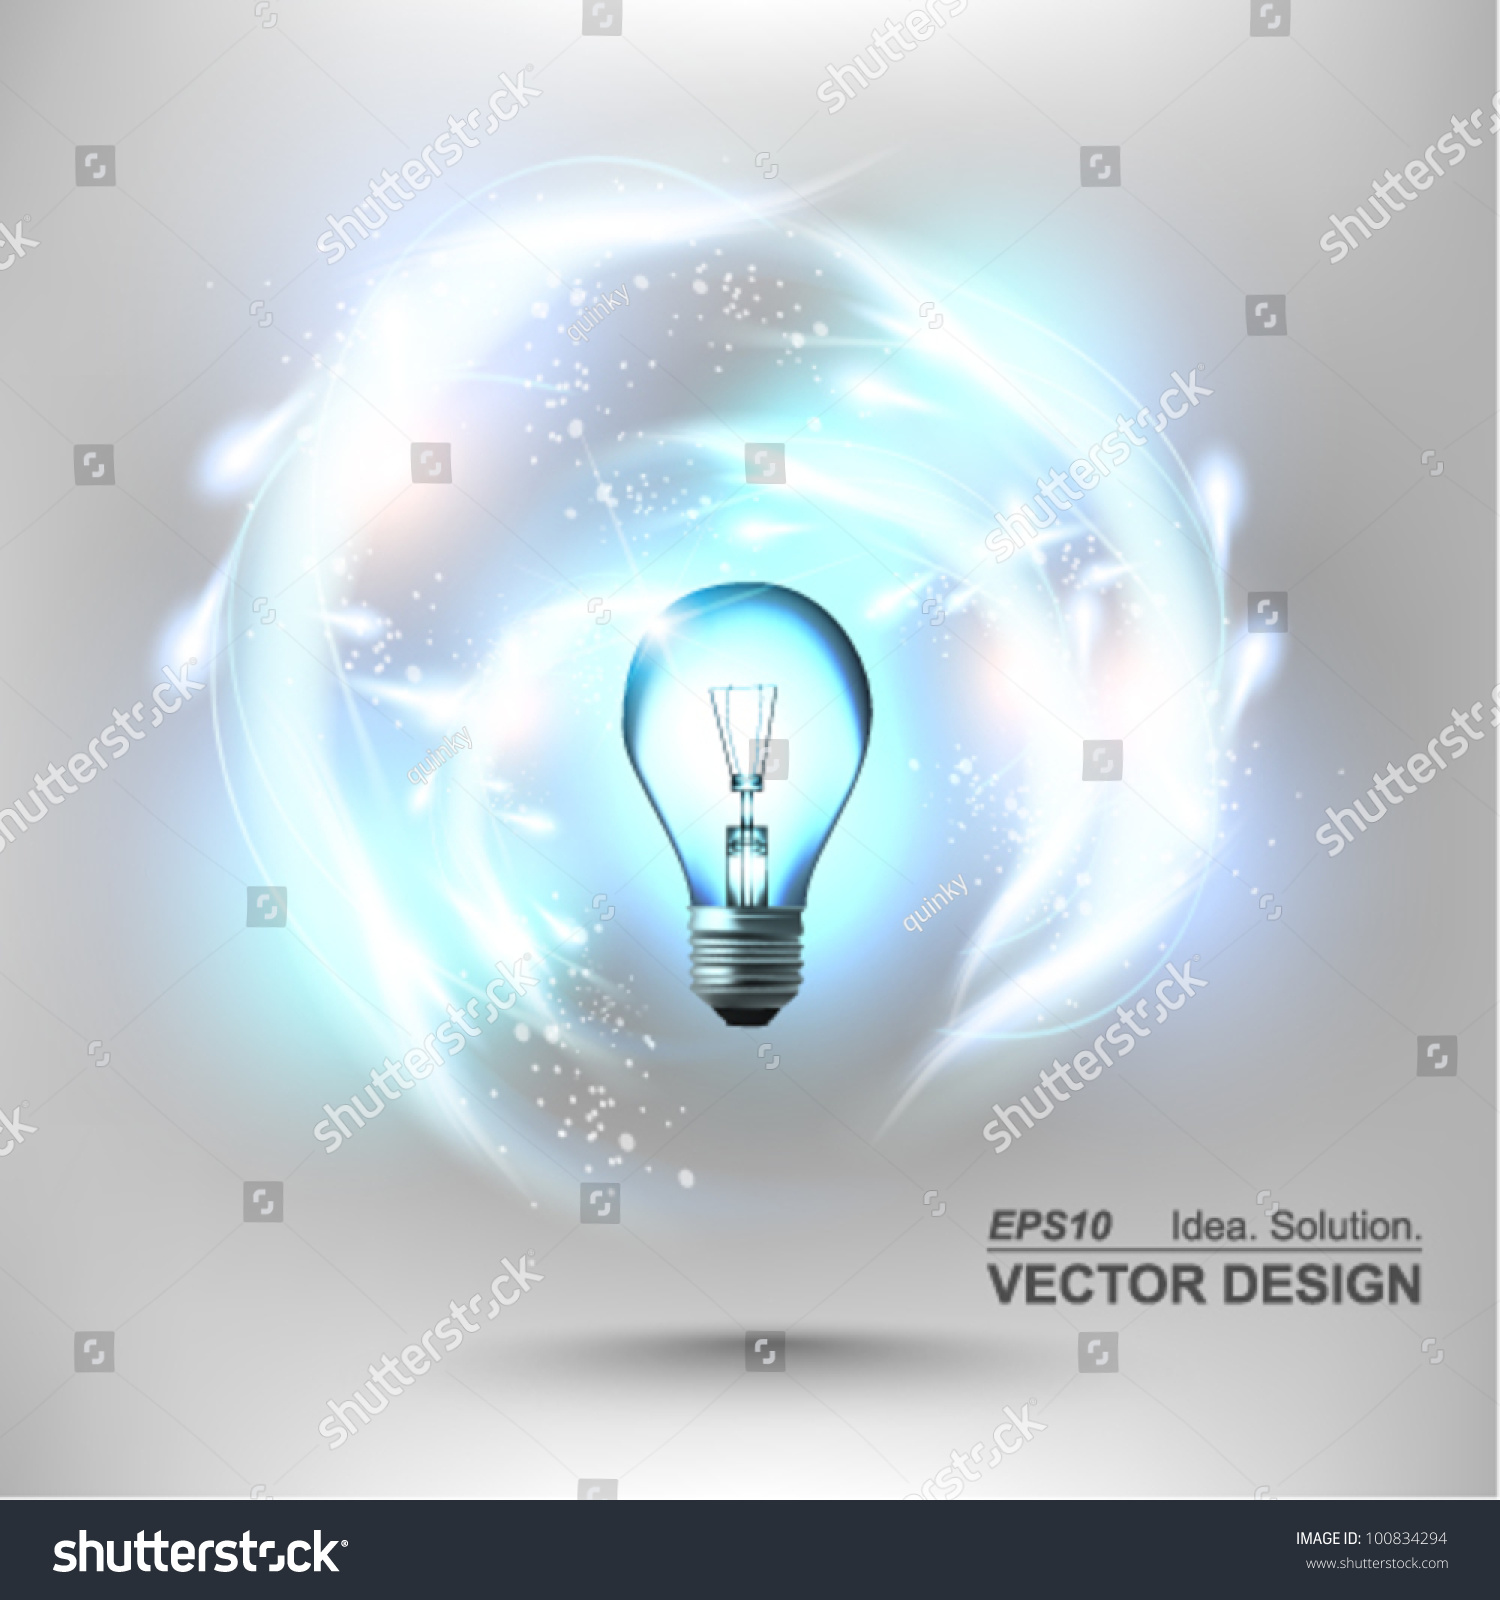 stylish conceptual digital light bulb idea design idea design - Idea Design